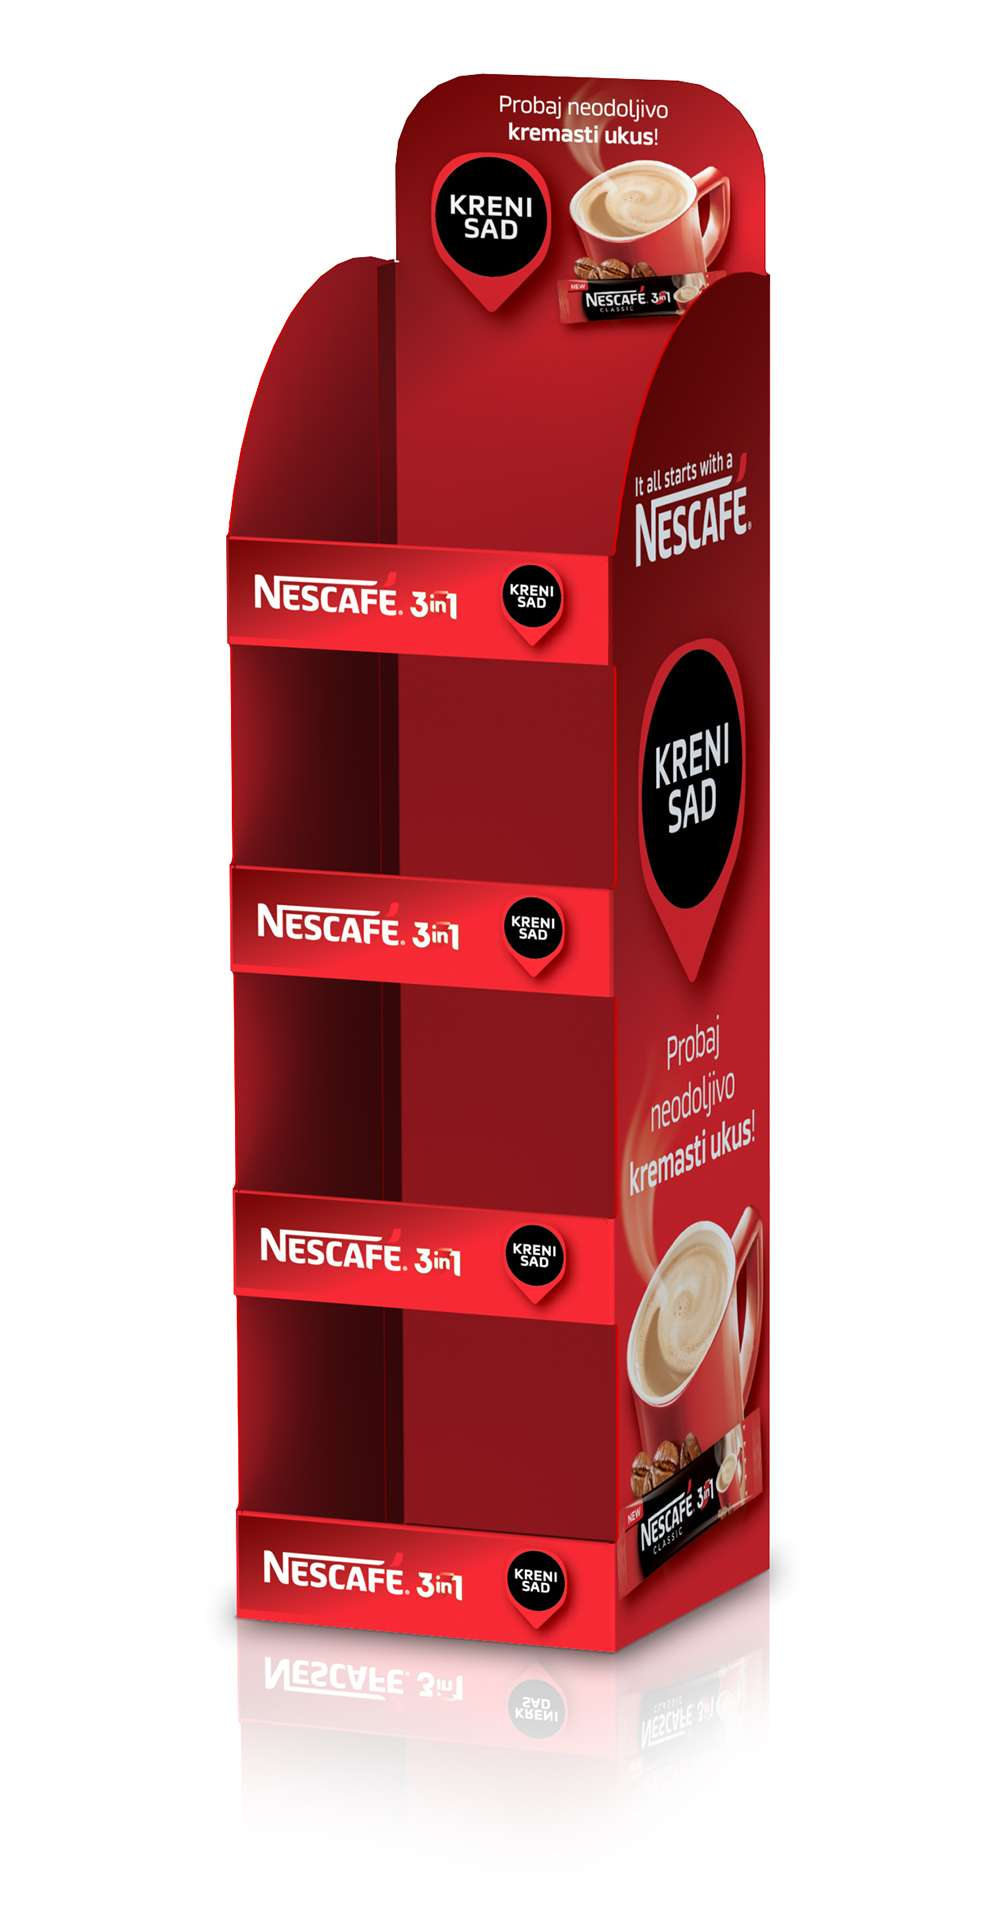 Nescafe hanging parasite unit